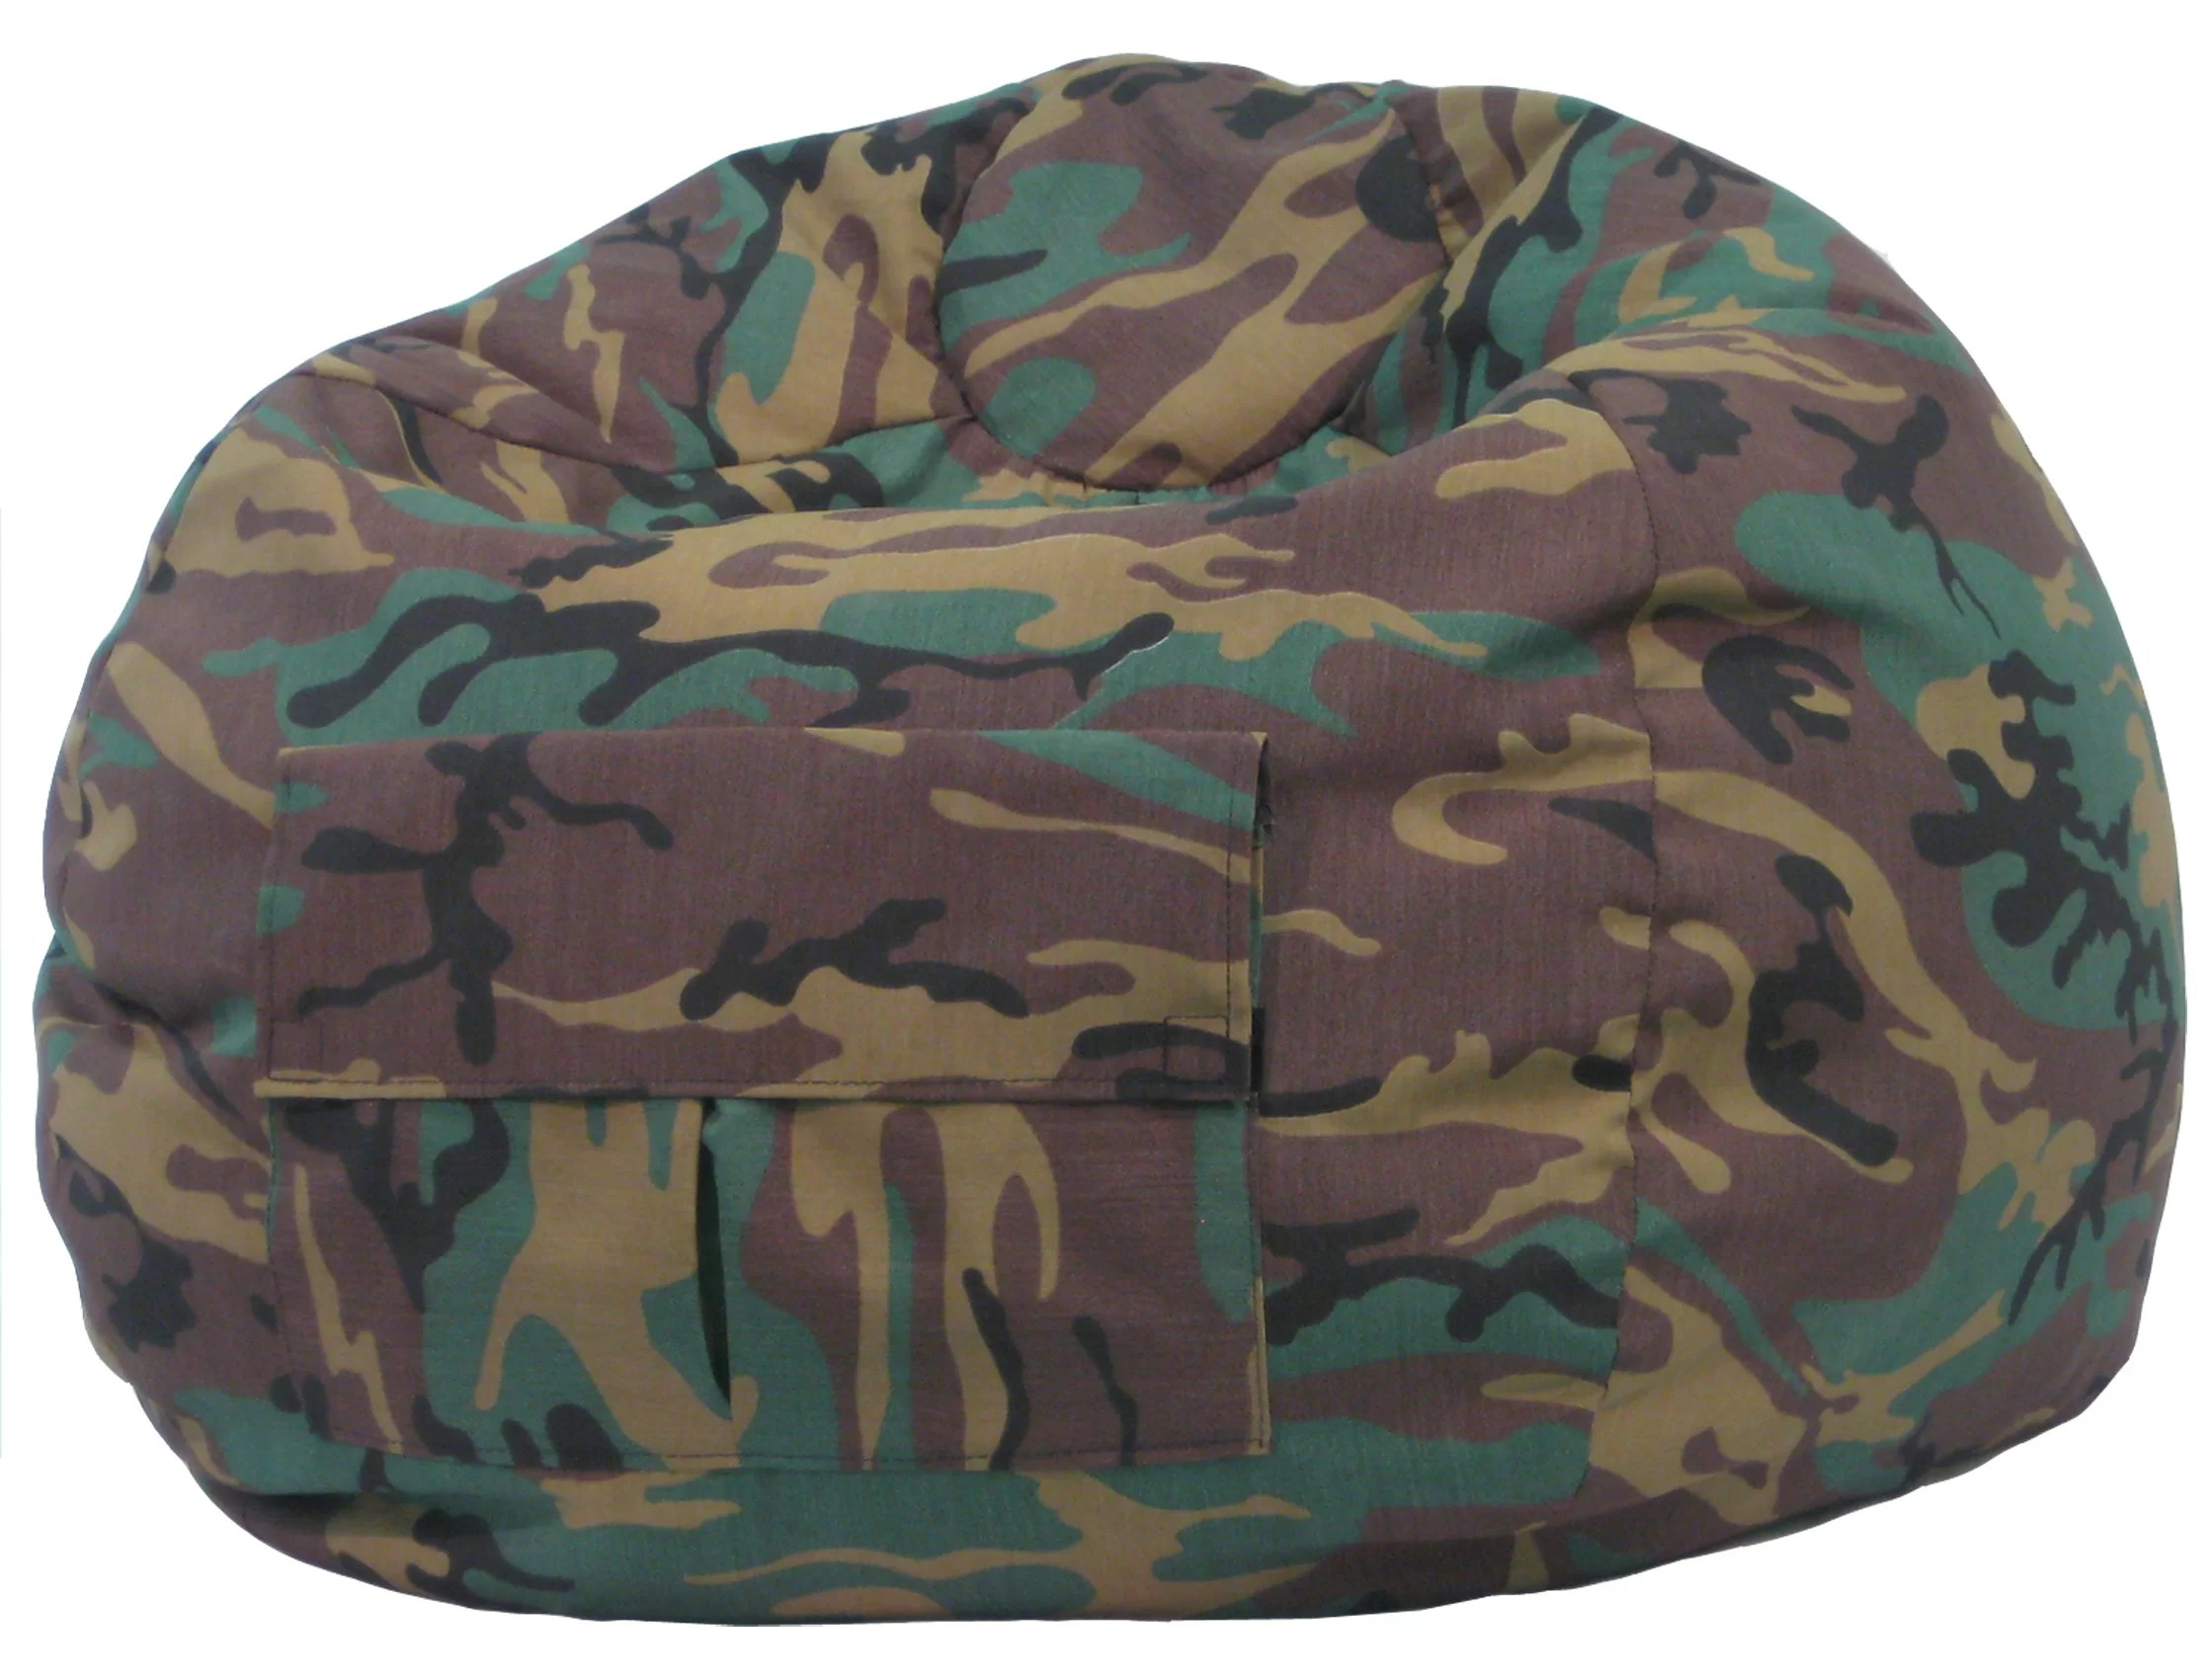 Bean Bags Chair Camouflage Bean Bag Chair